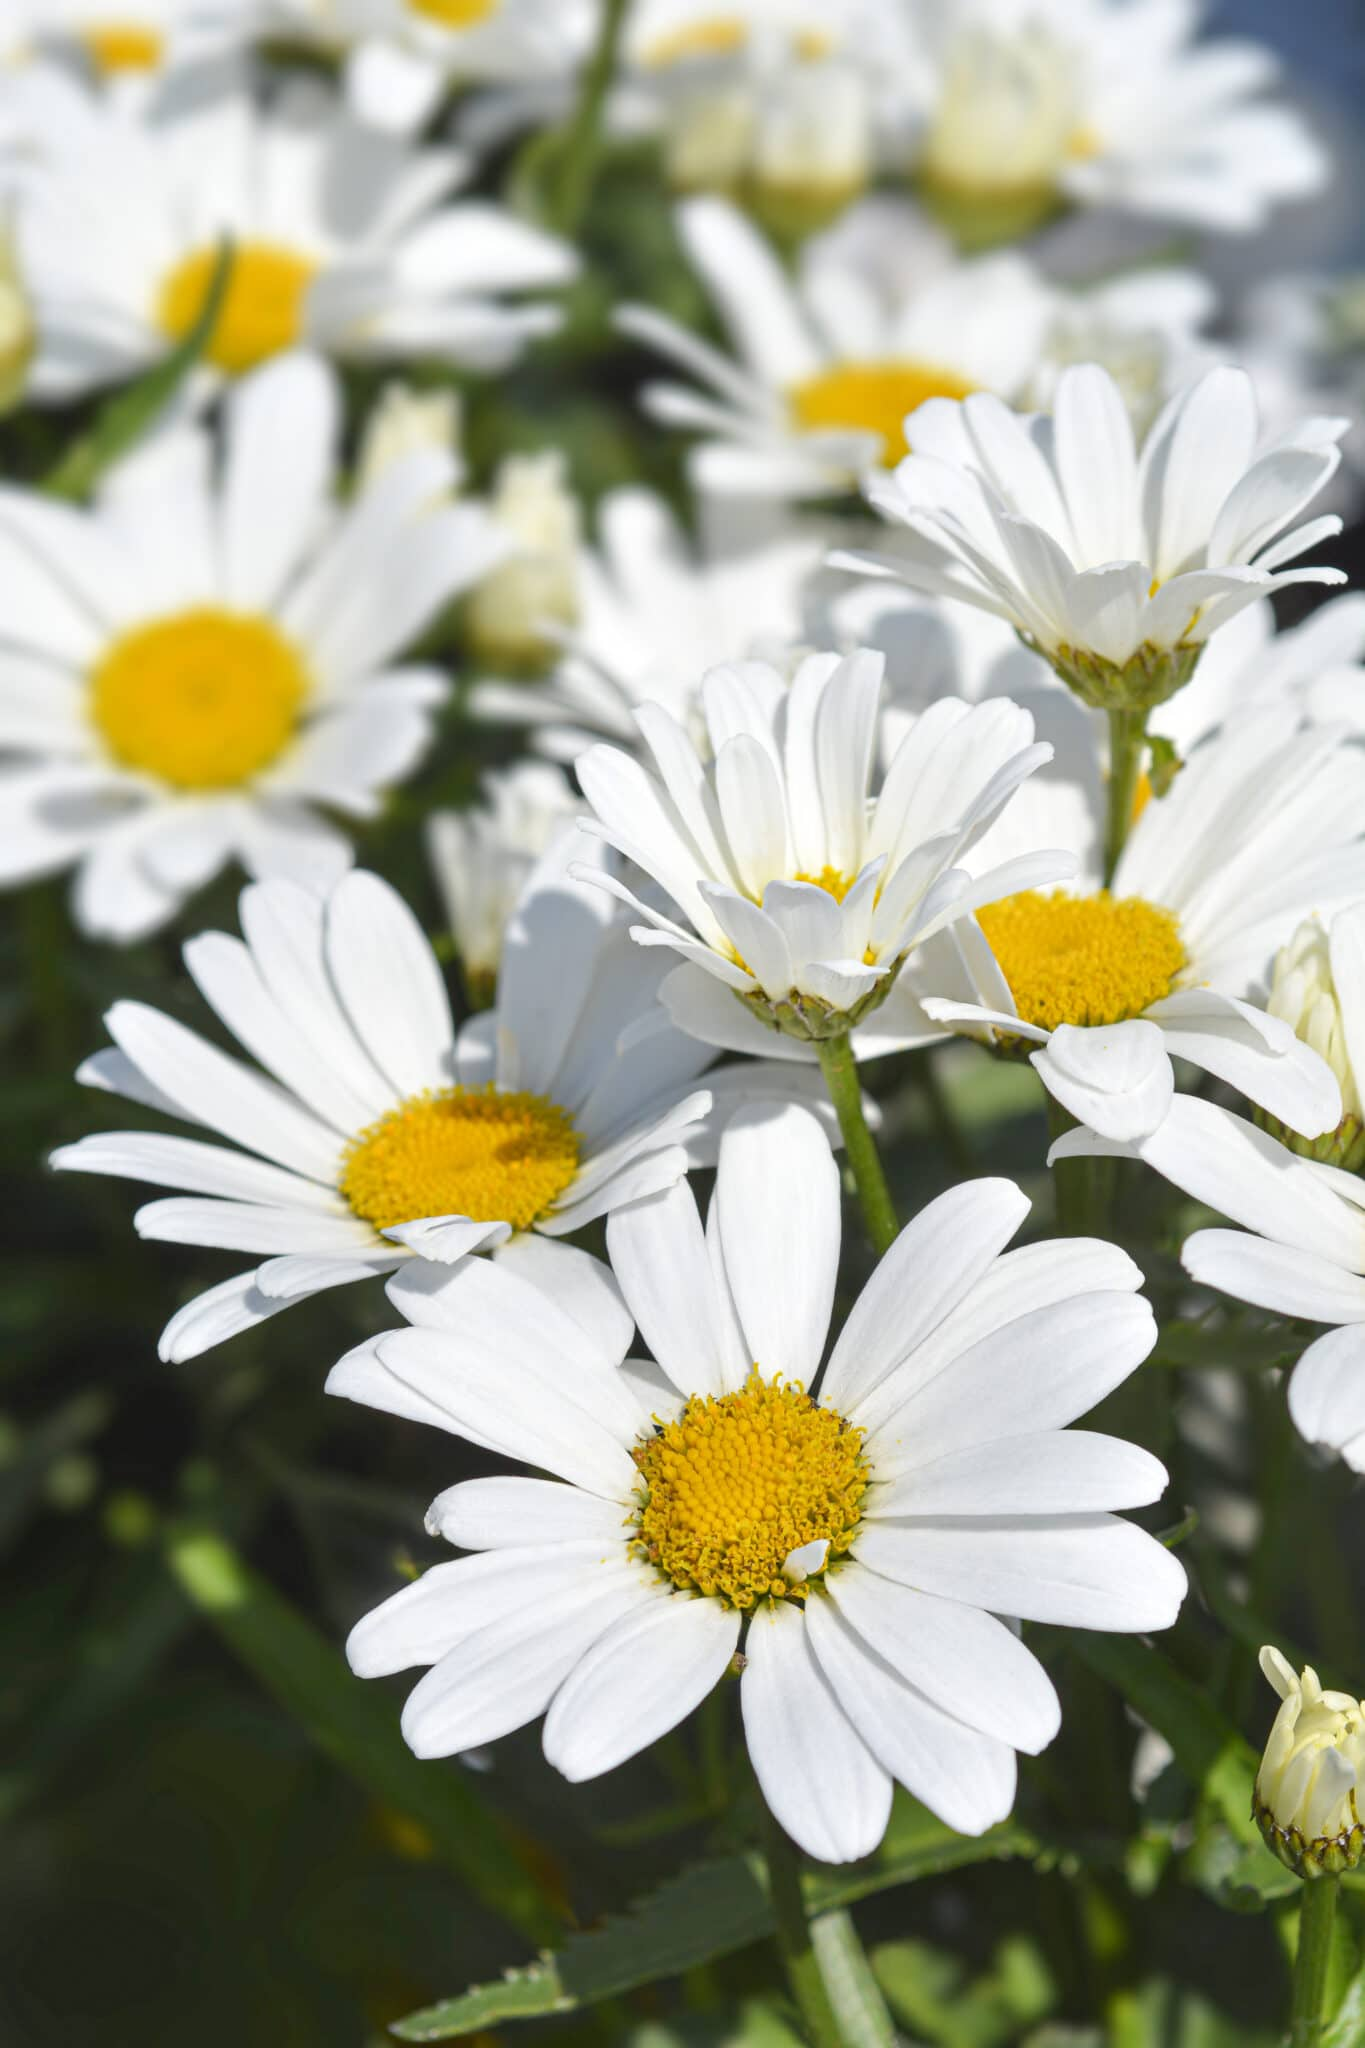 Shasta Daisies against dark green foliage. The image shows the bright white petals that make them great moonlight plants.